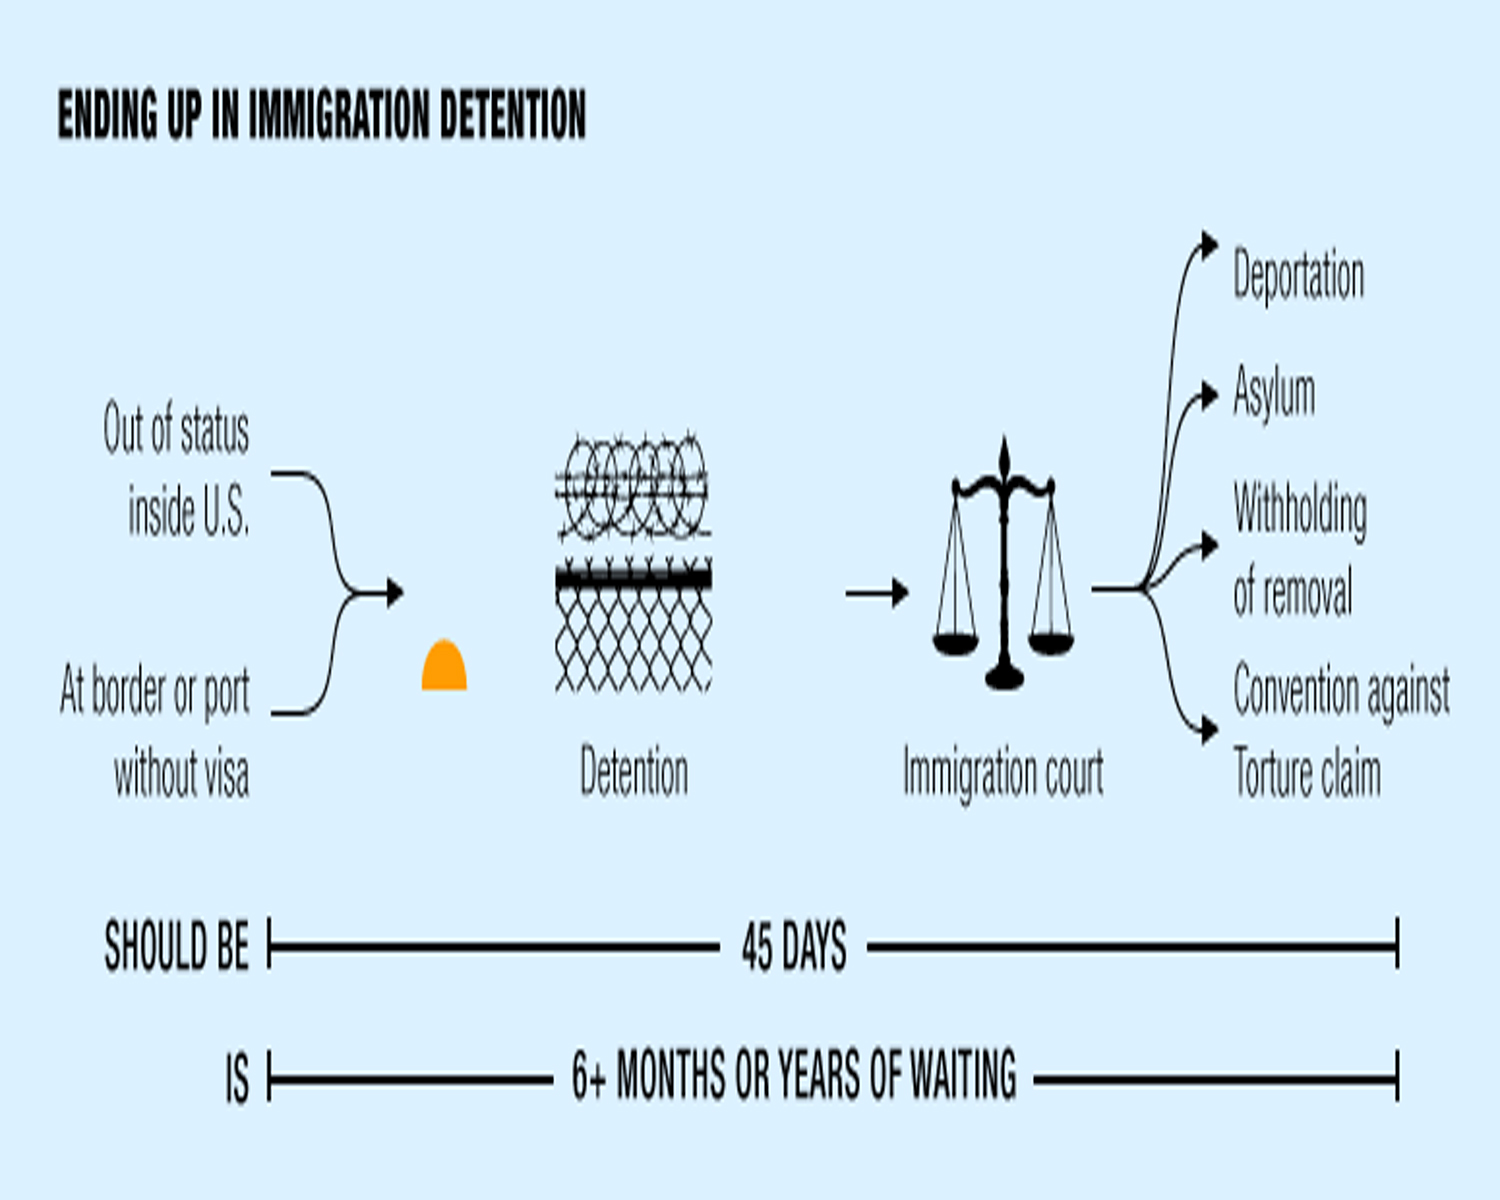 Immigration Detention - What are the Removal Proceedings? What is the Bond Process?